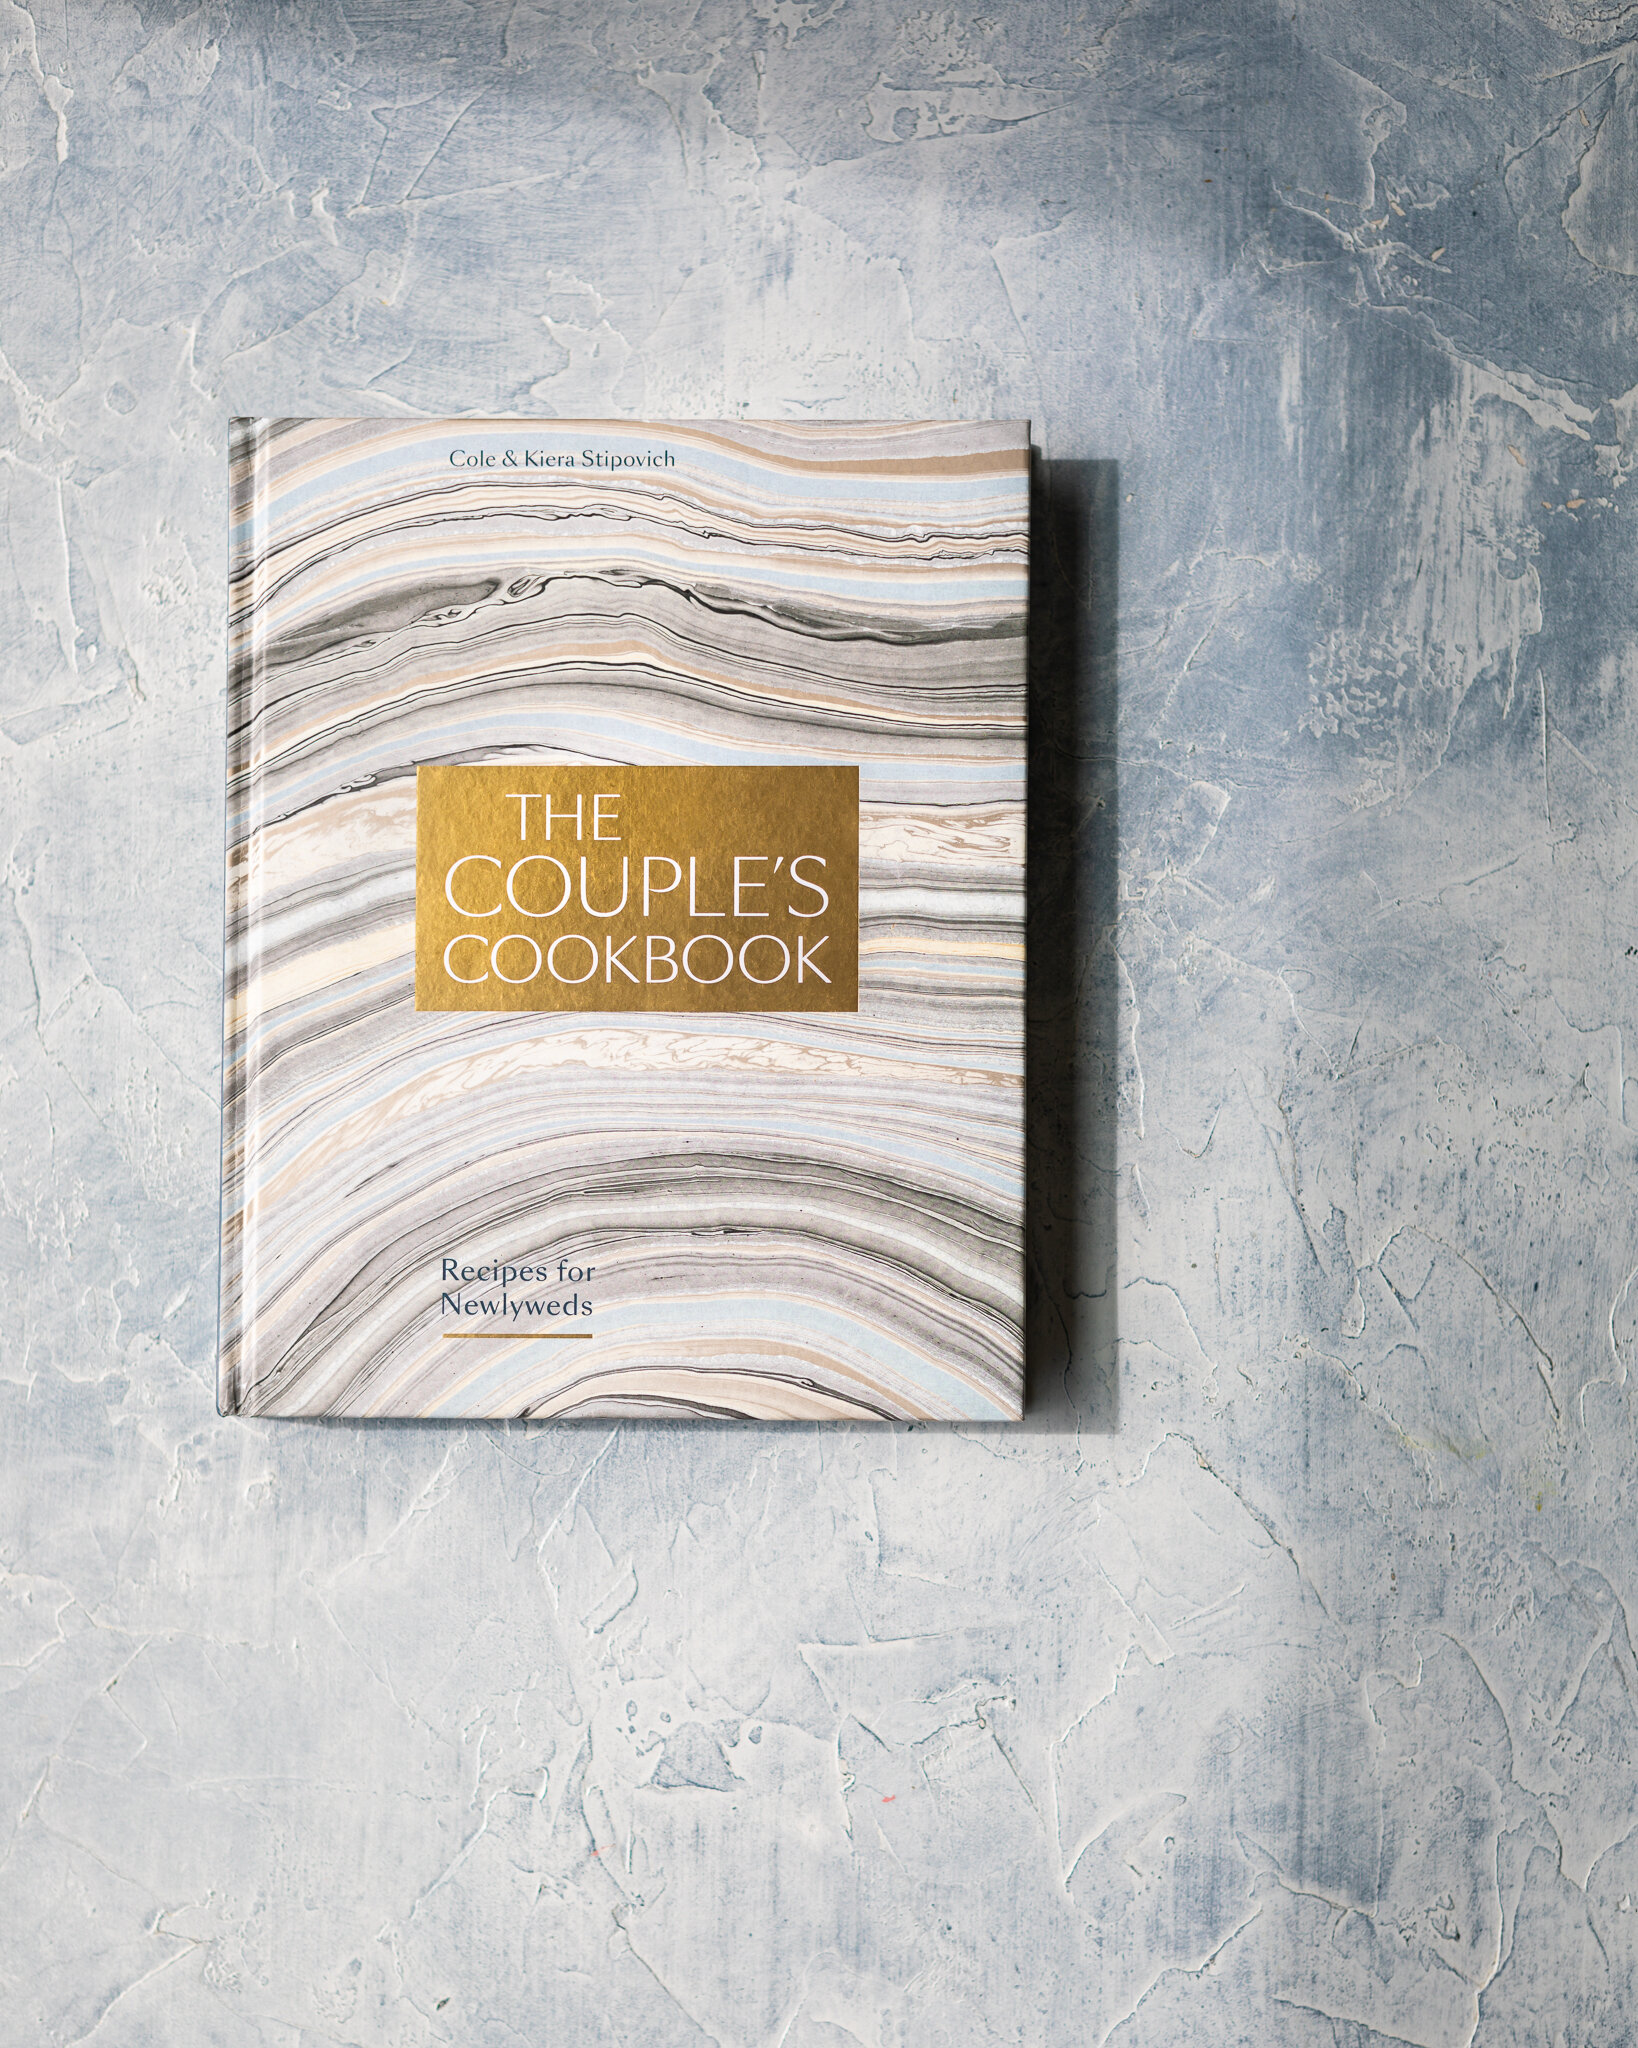 The Couple's Cookbook: Recipes for Newlyweds - Cover Image